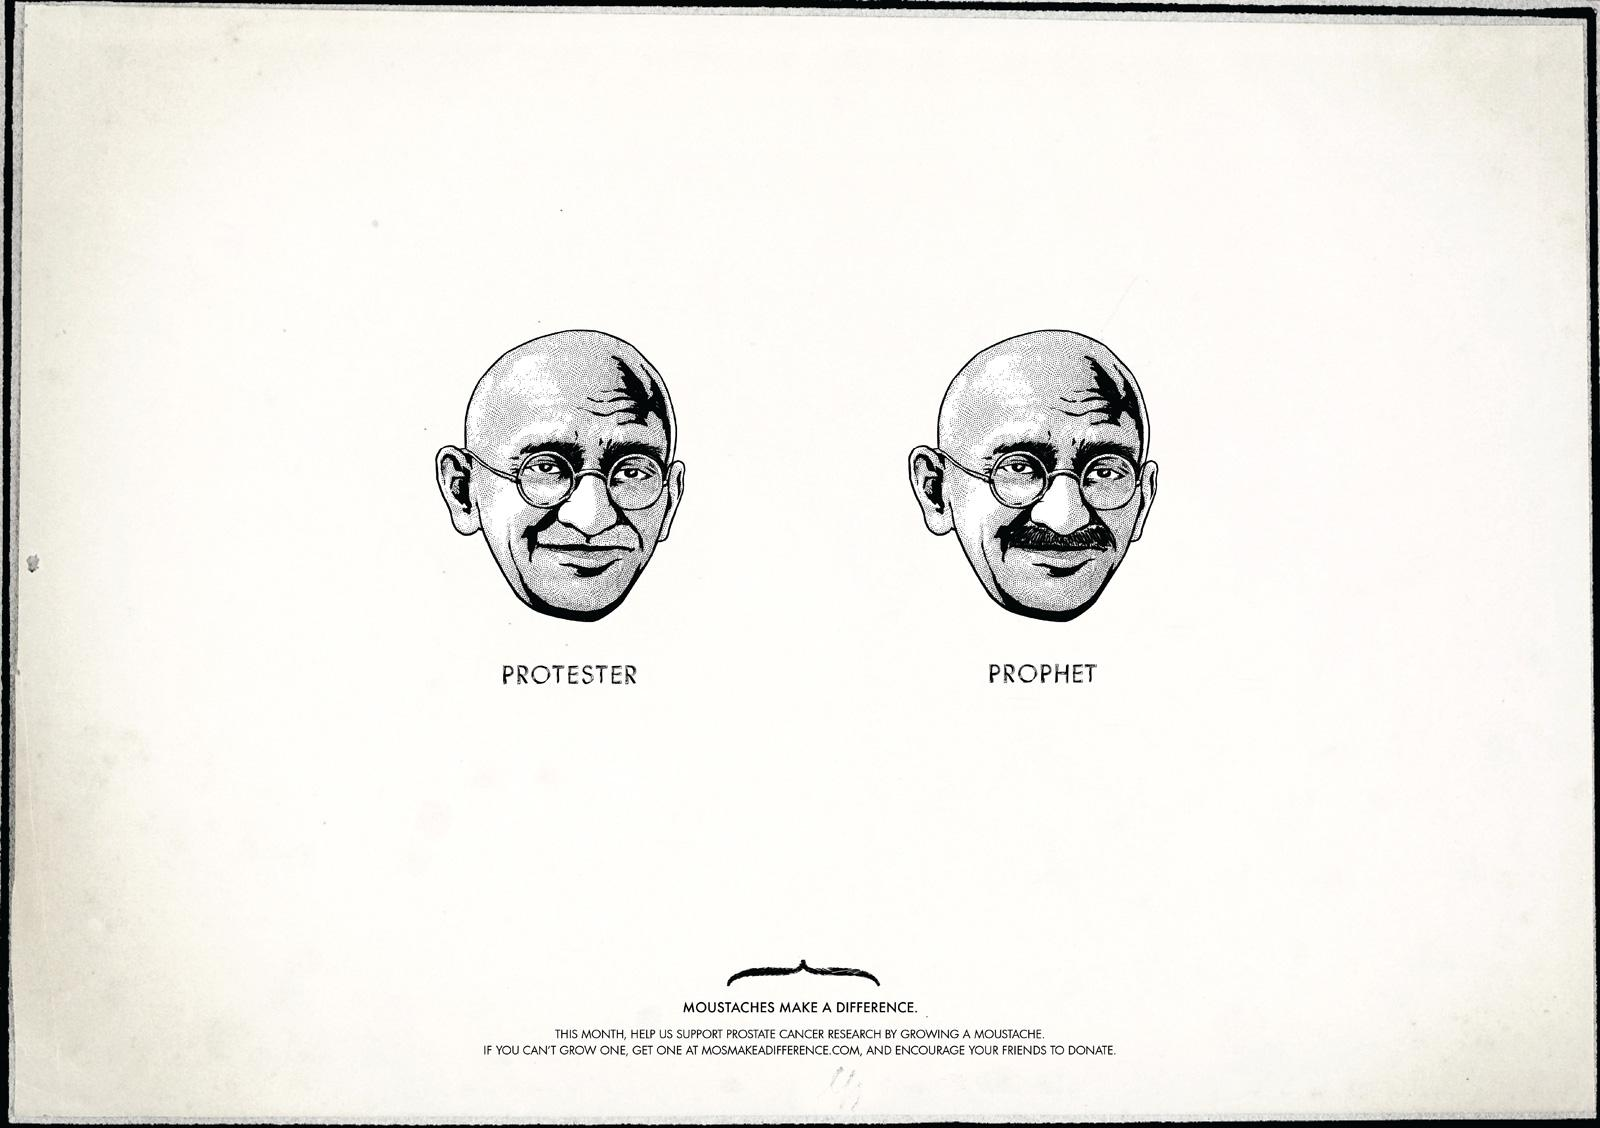 Moustaches Make A Difference Print Ad -  Gandhi